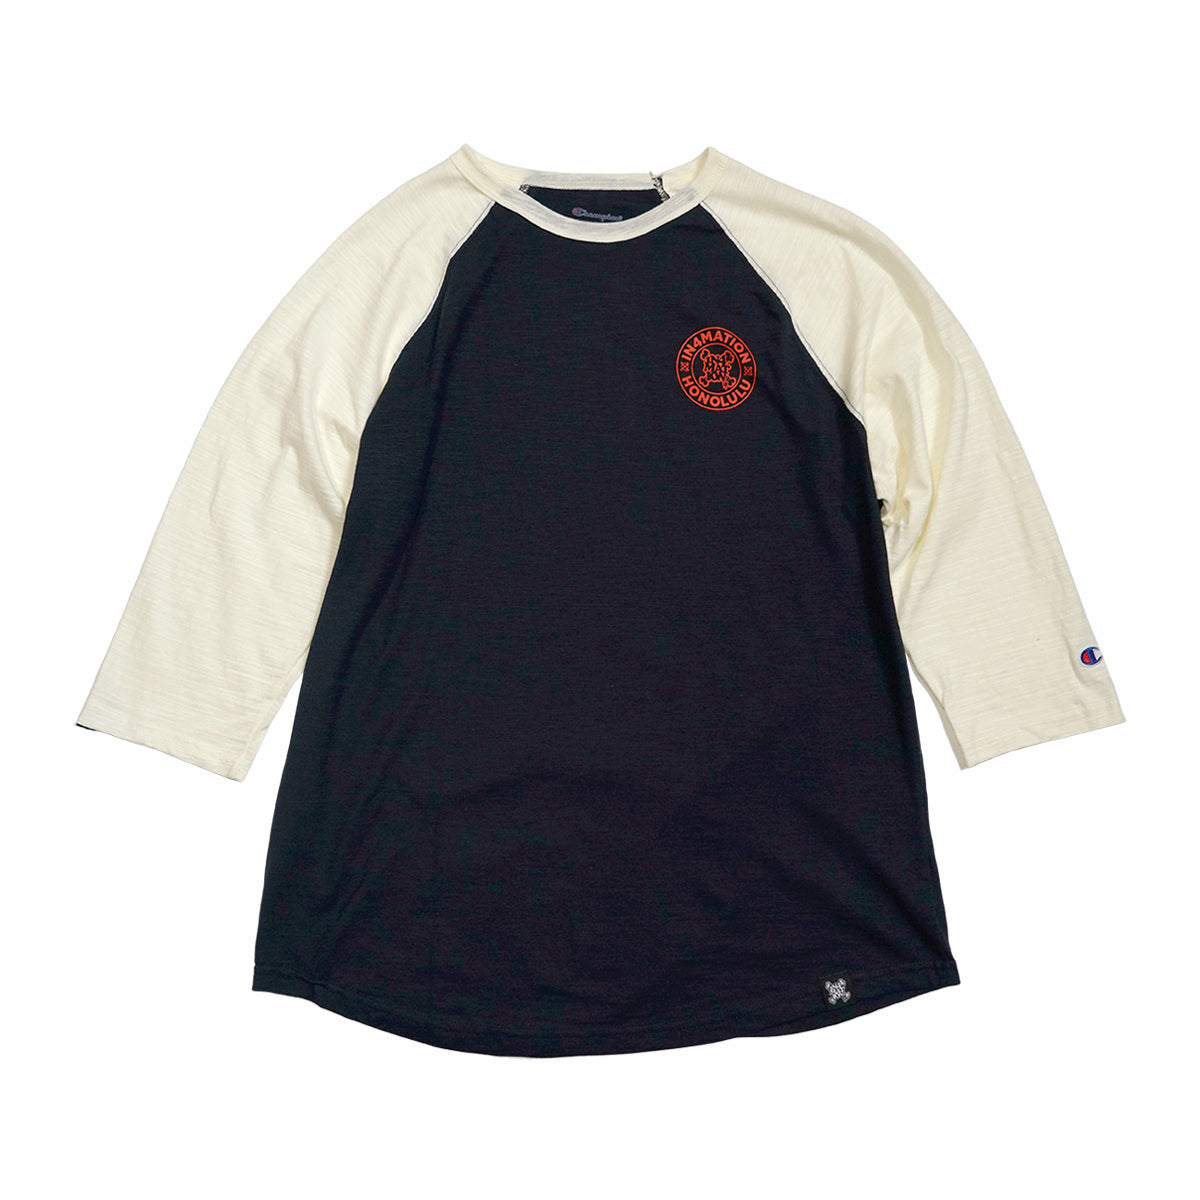 IN4MATION  - STAMPED CHAMPION RAGLAN (NAVY/CHALK)